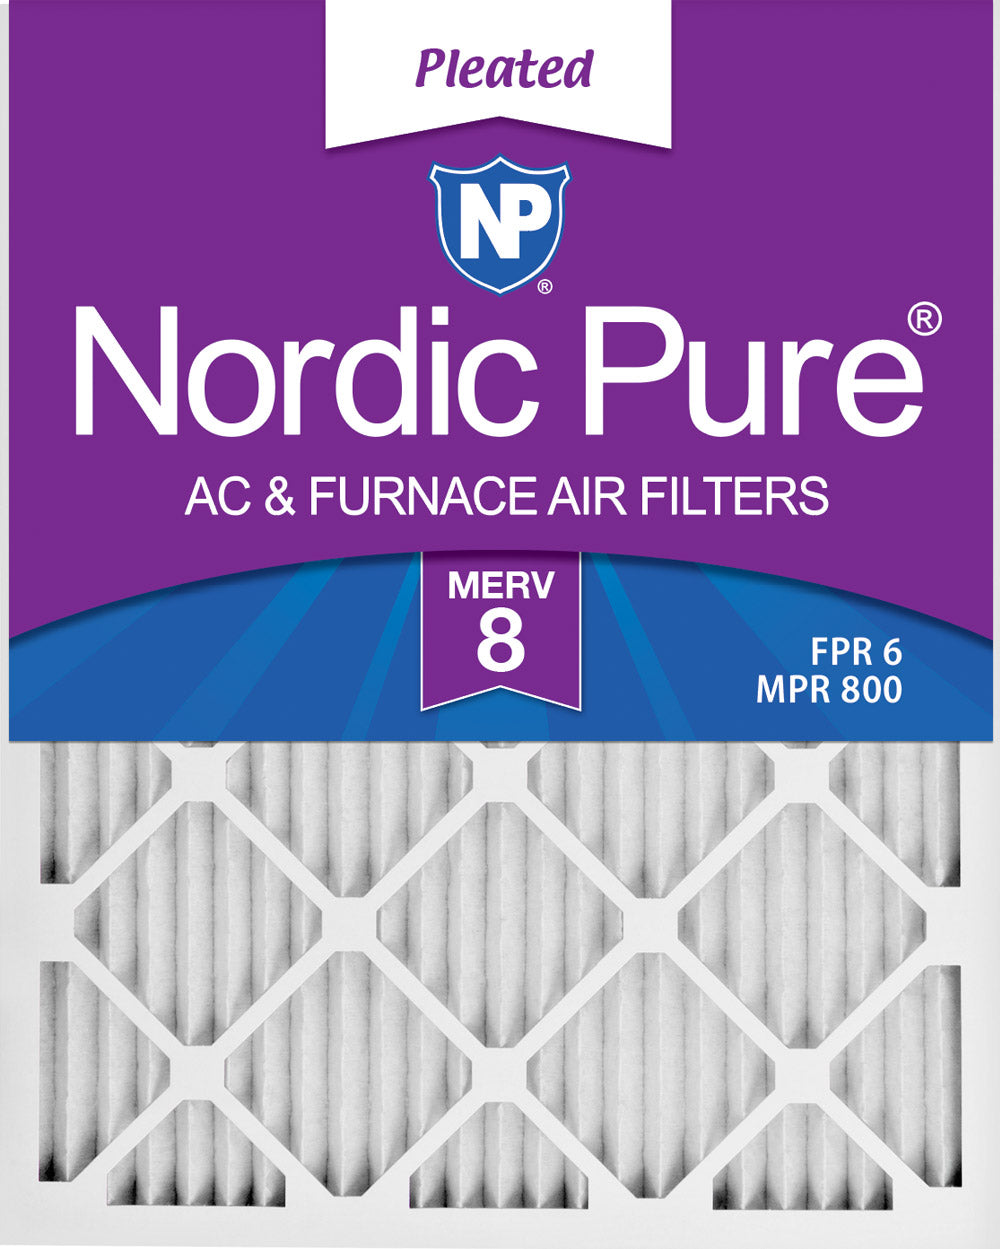 16x25x1 Pleated MERV 8 Air Filters 6 Pack